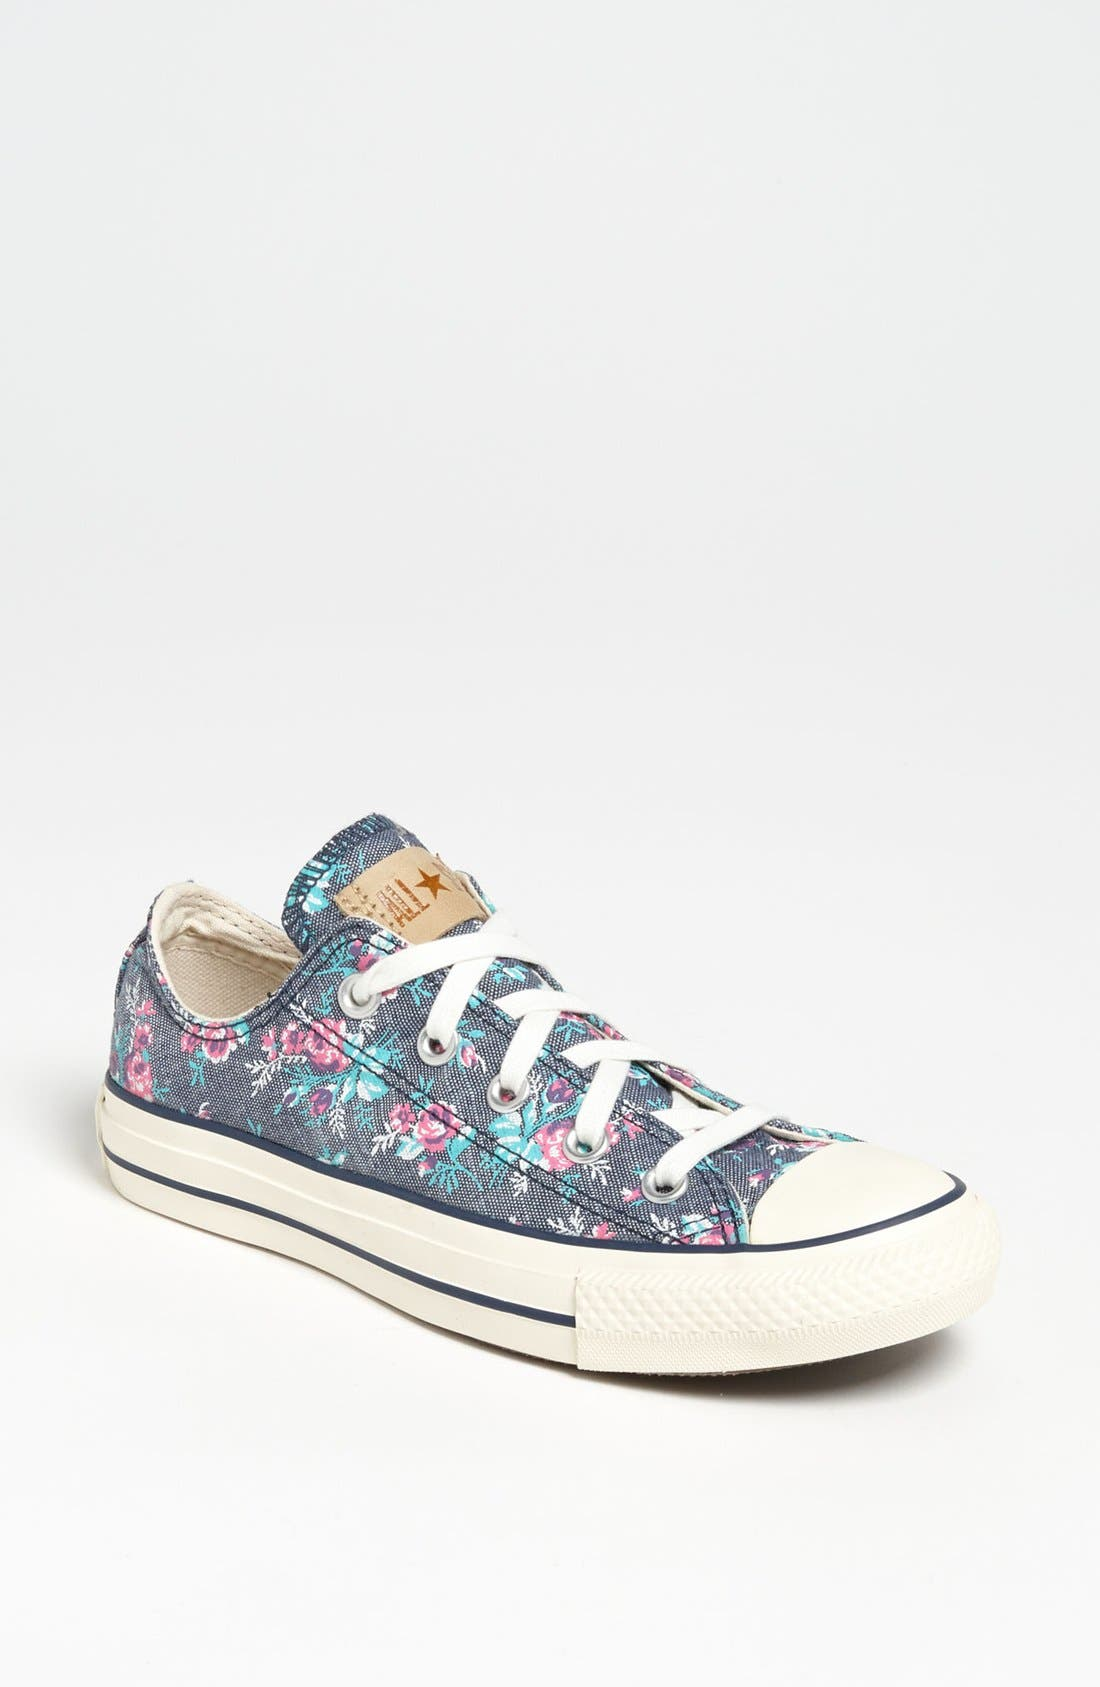 Alternate Image 1 Selected - Converse Chuck Taylor® All Star® Floral Sneaker (Women)